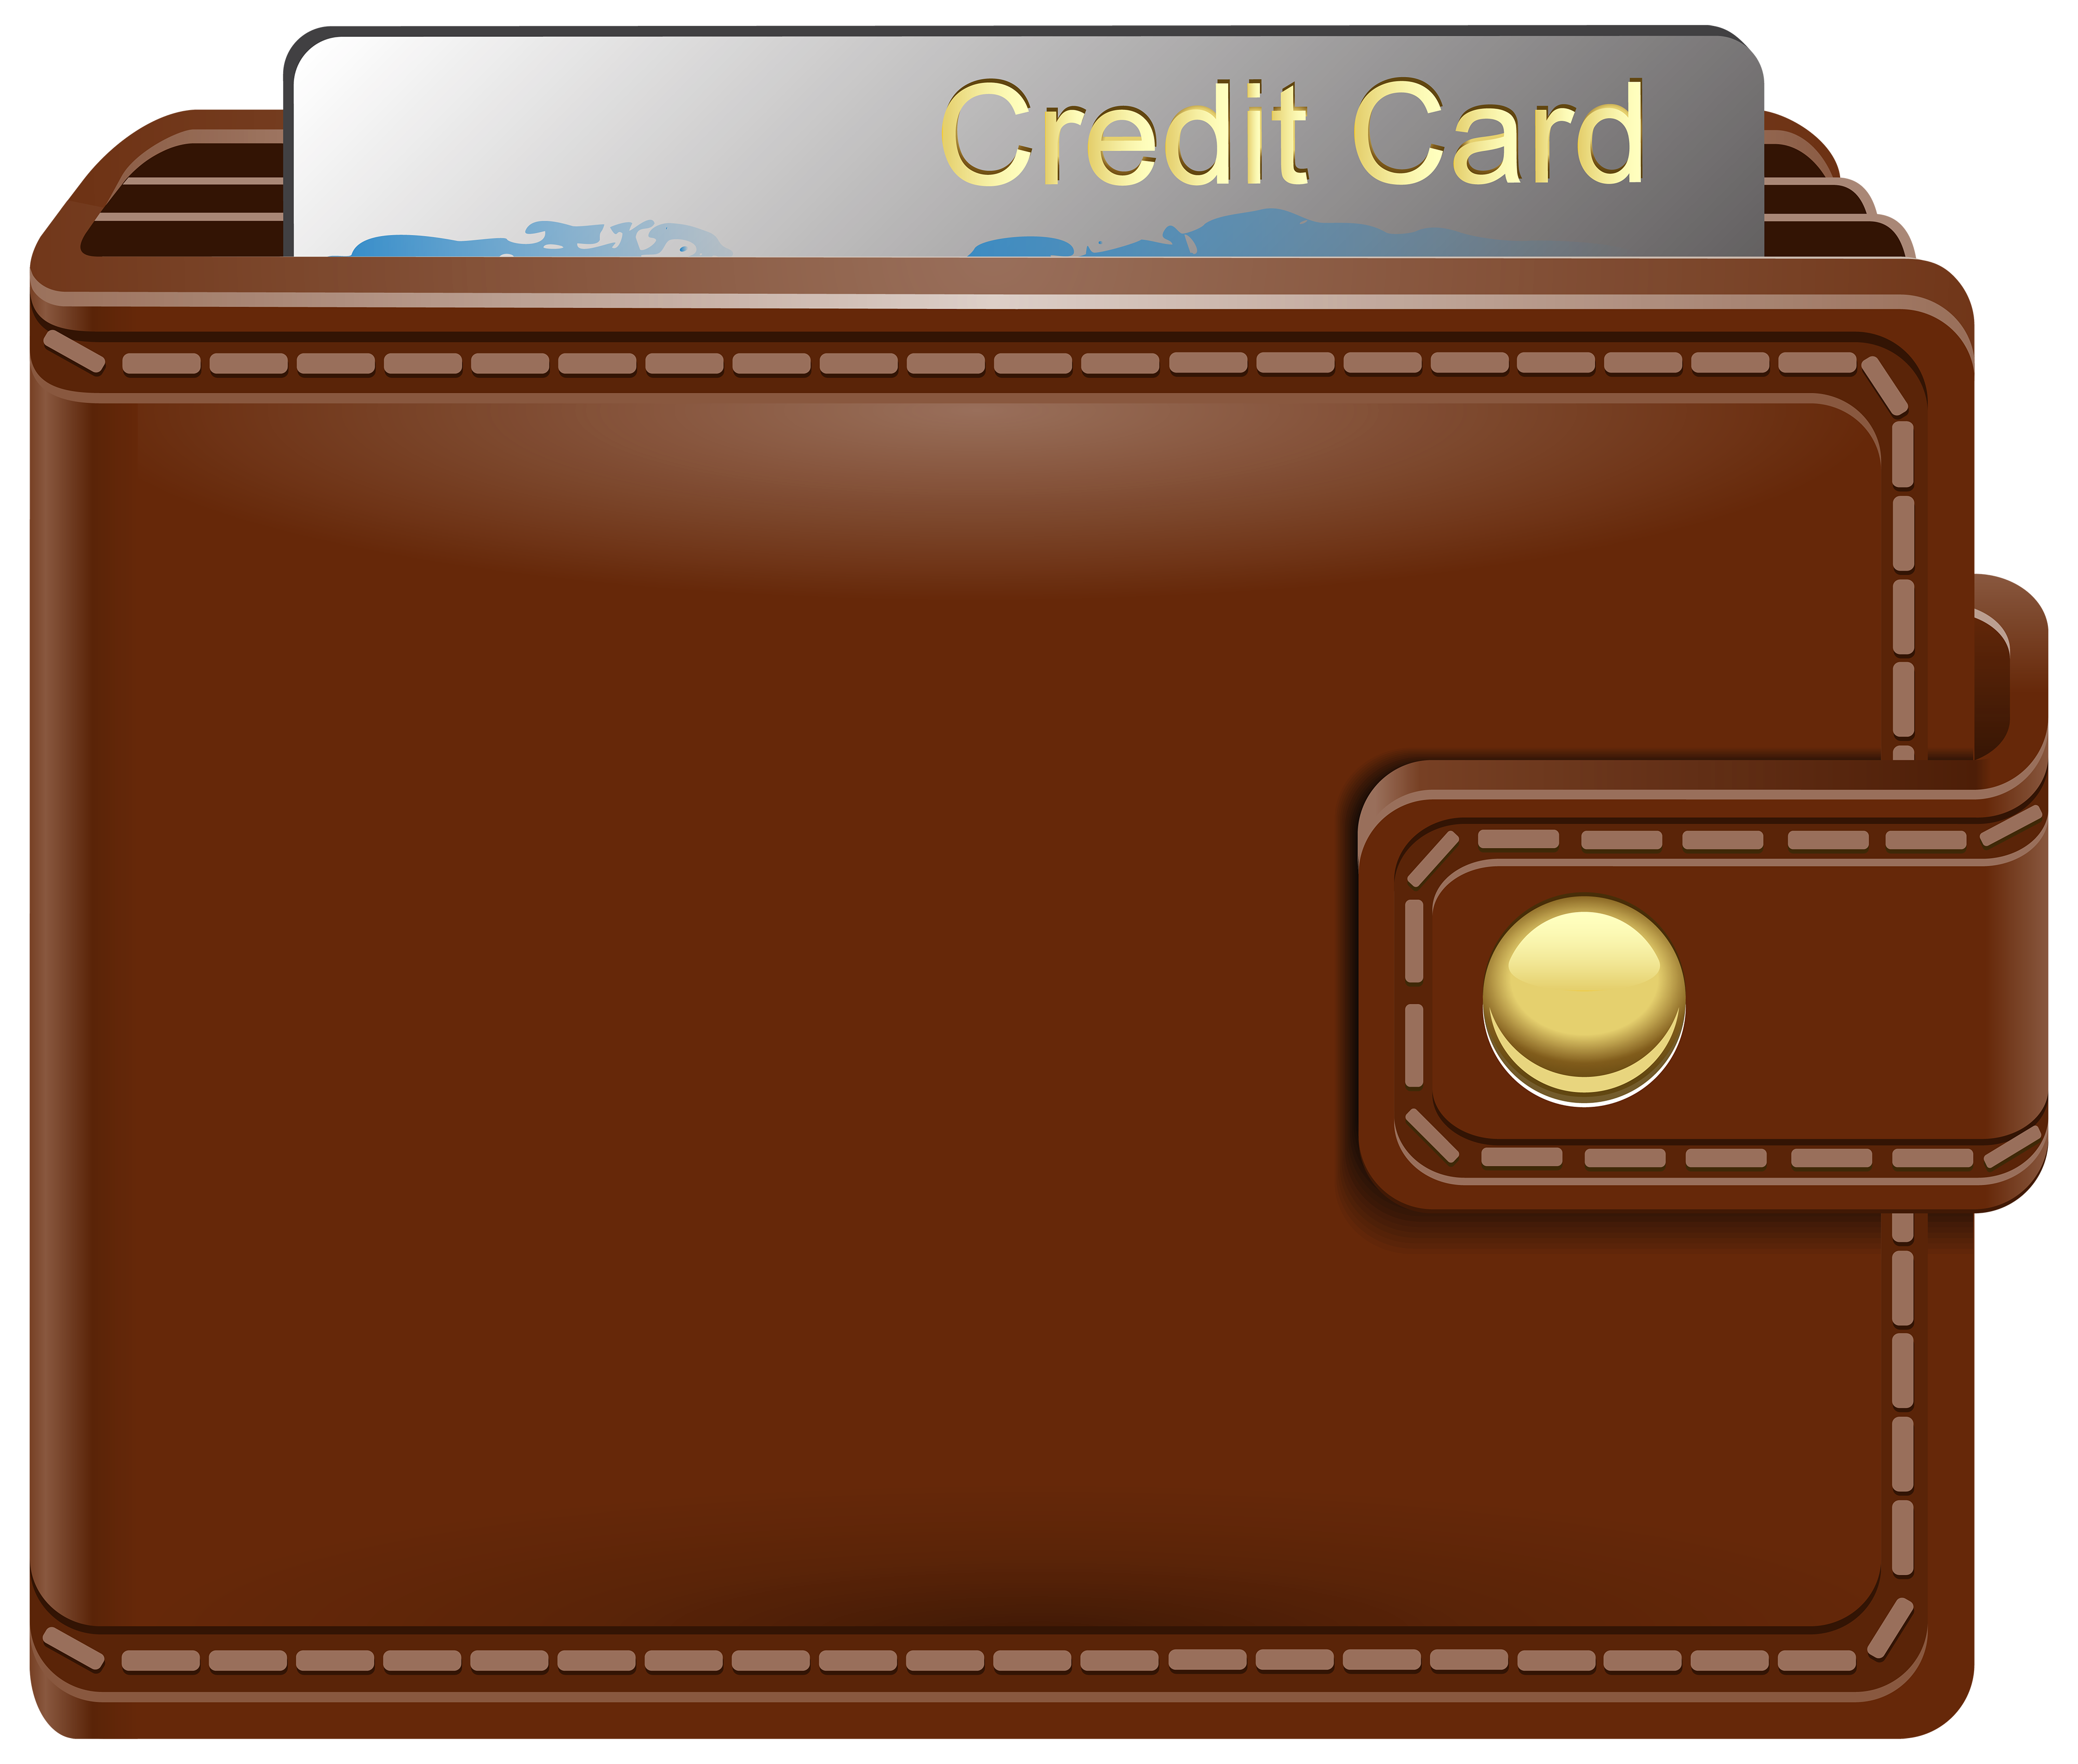 Wallet clipart. With credit card png